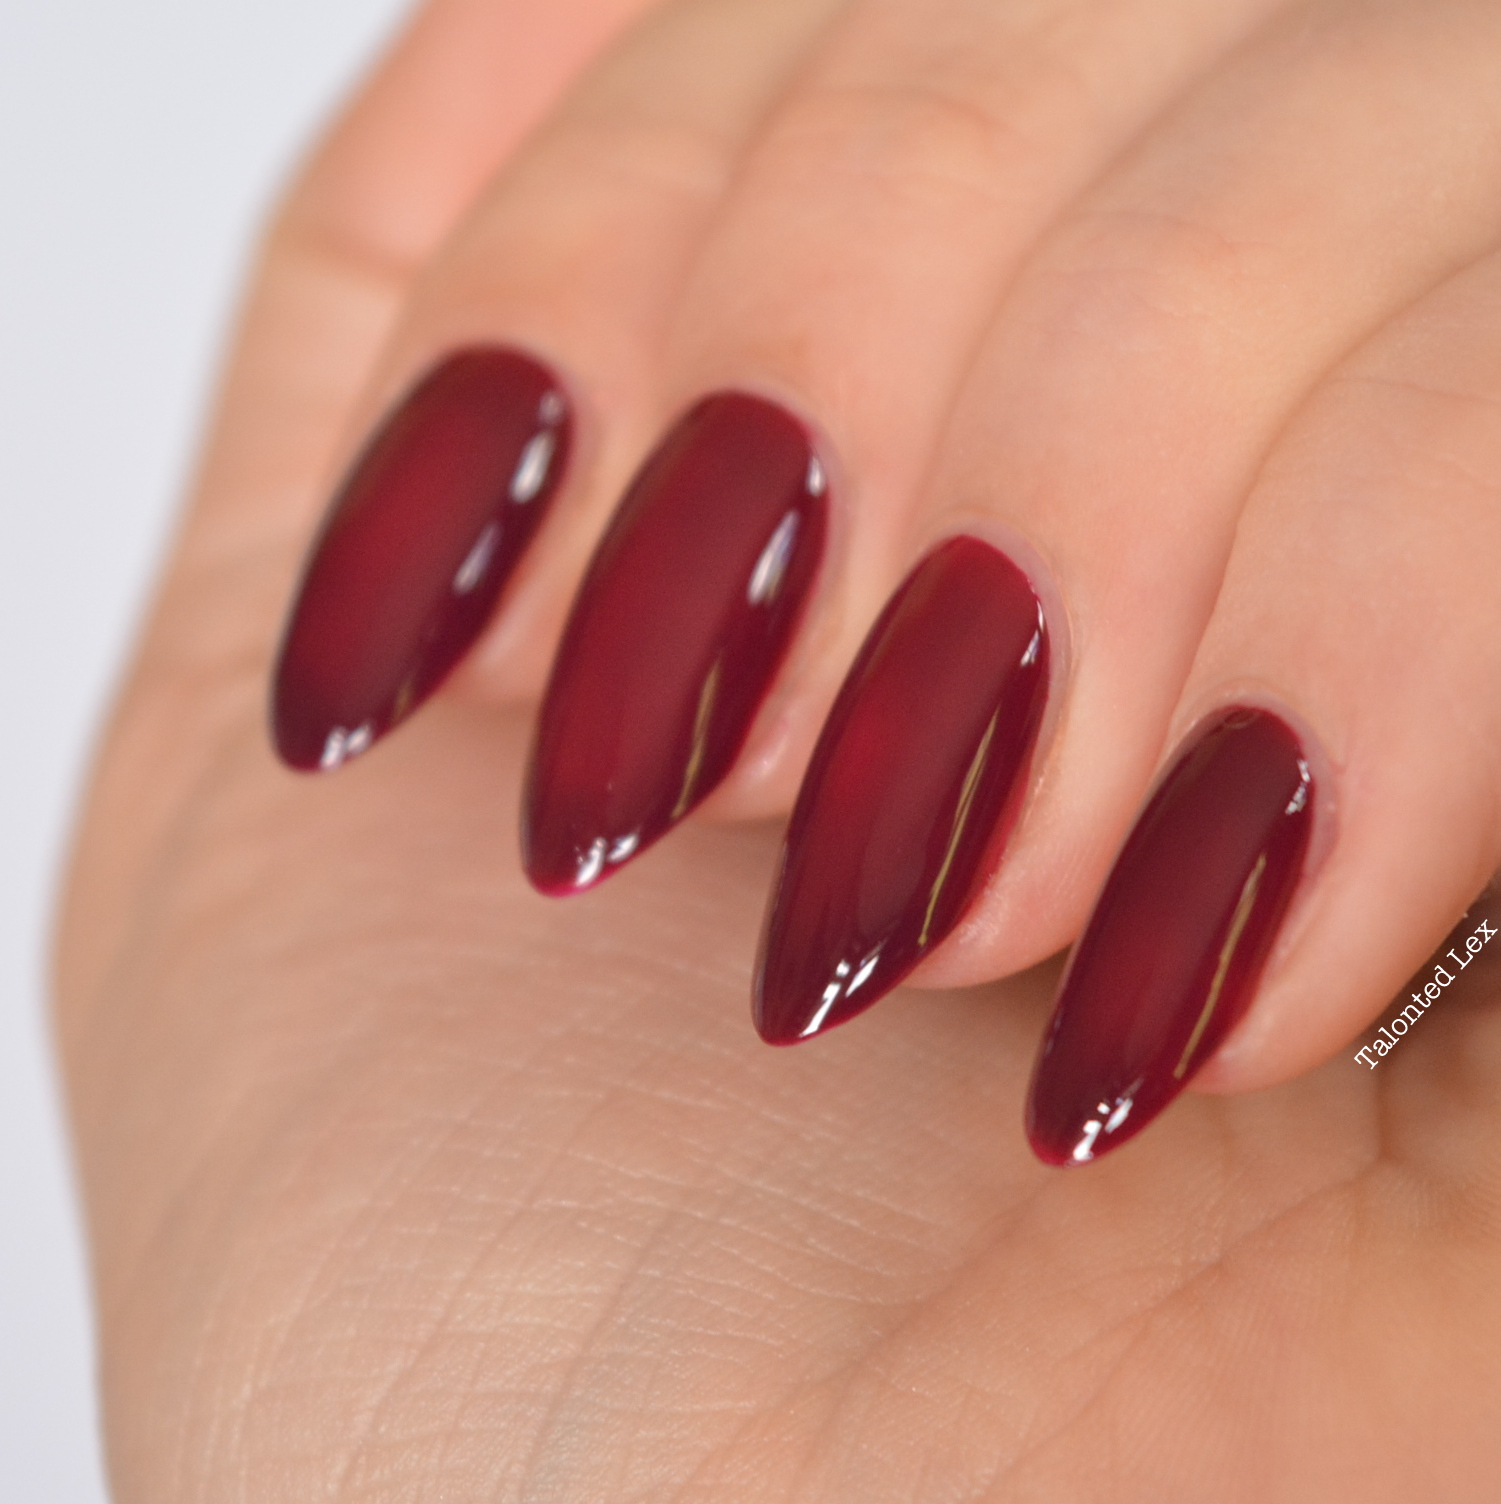 essie-fall-collection-talonted-lex-review-with-swatches-in-the-lobby-3